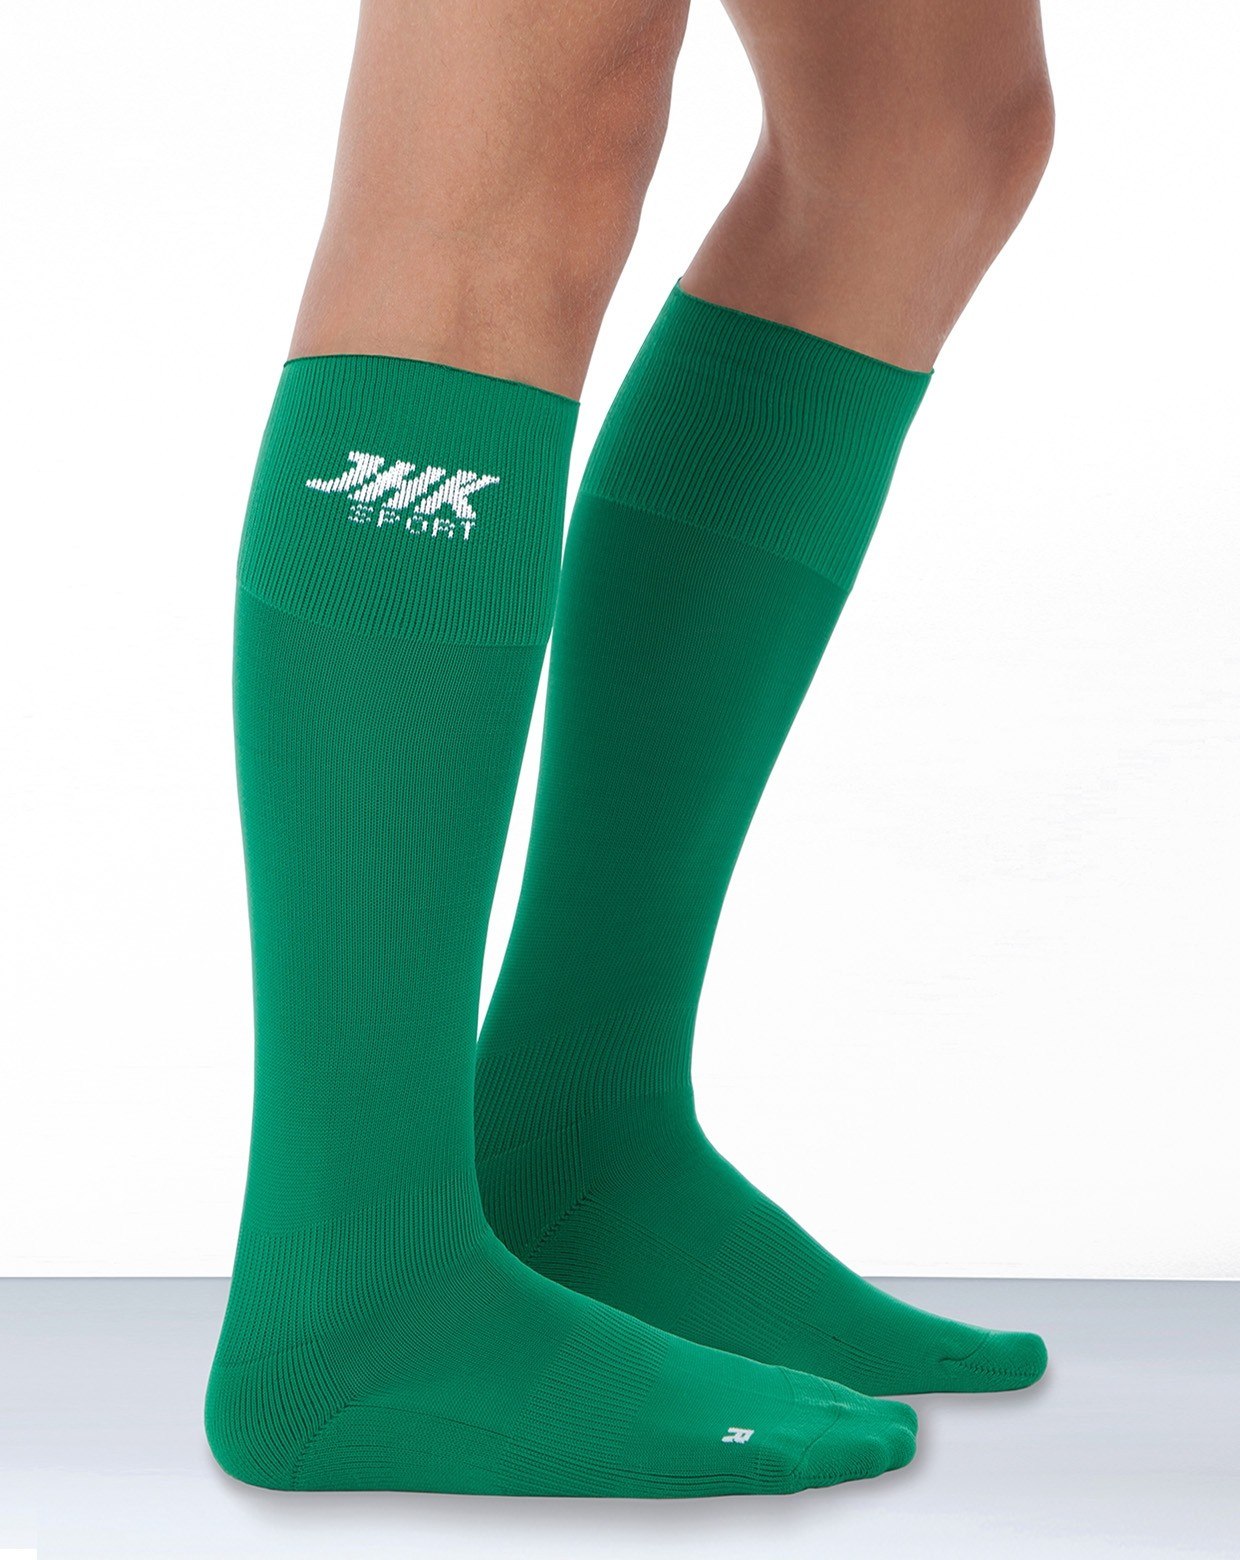 JHK ELITE SOCKS